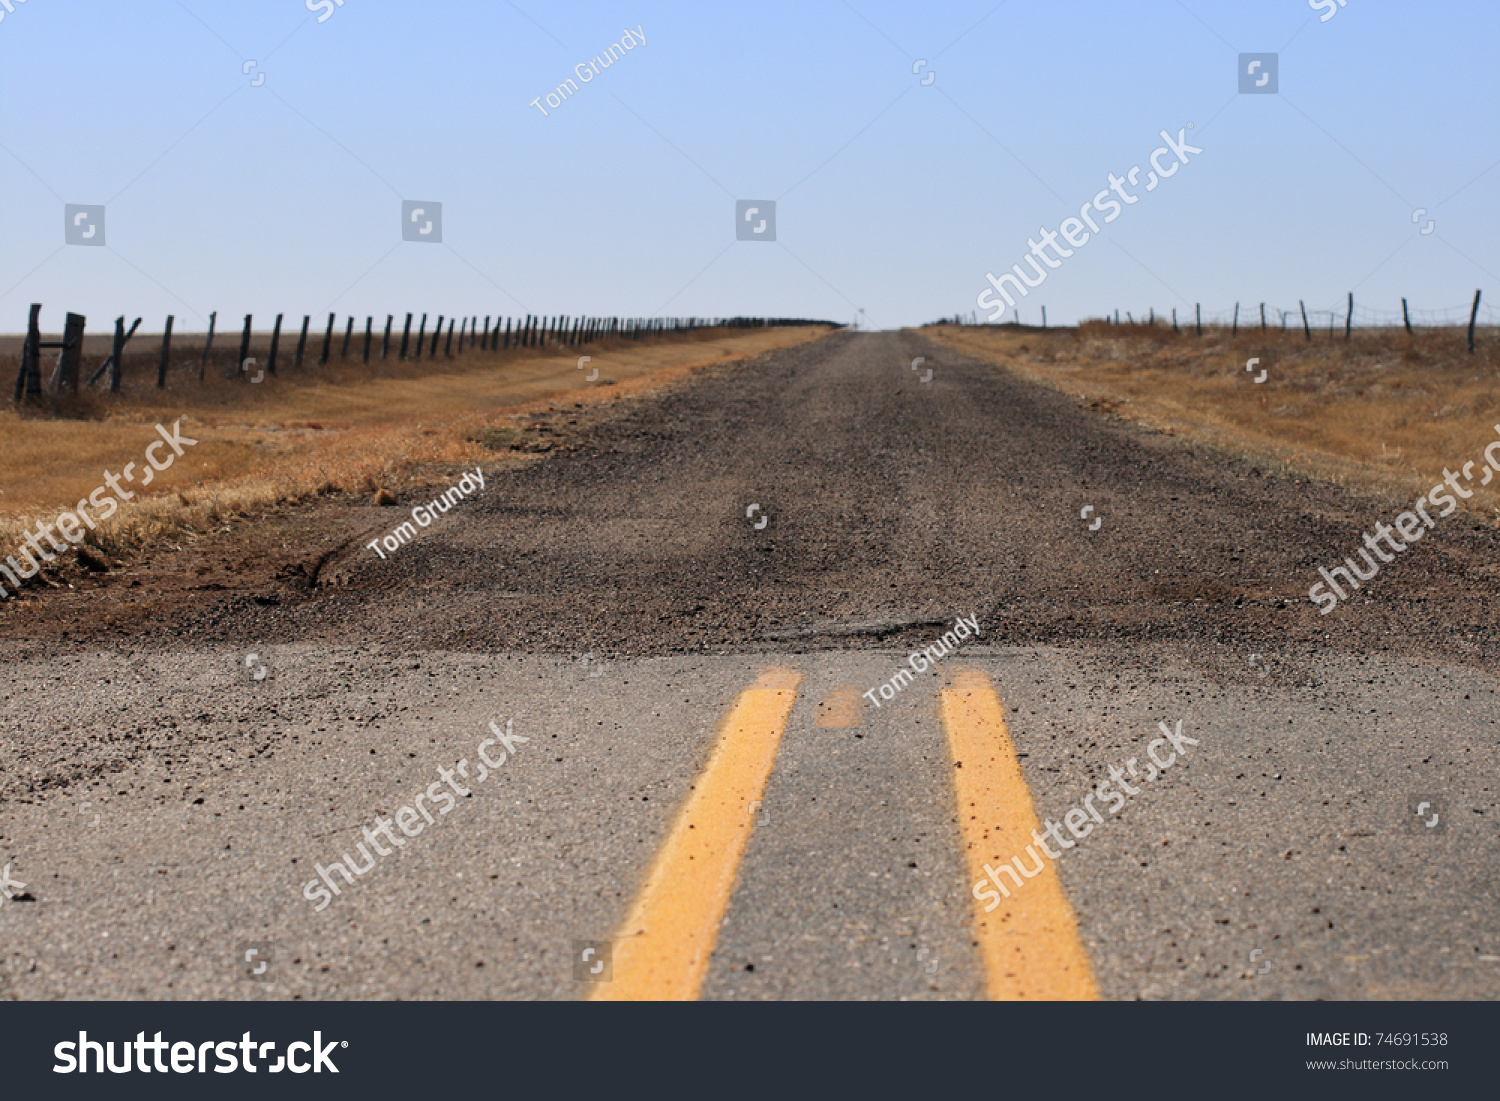 End Paved Road Where Turns Into Stock Photo 74691538 - Shutterstock